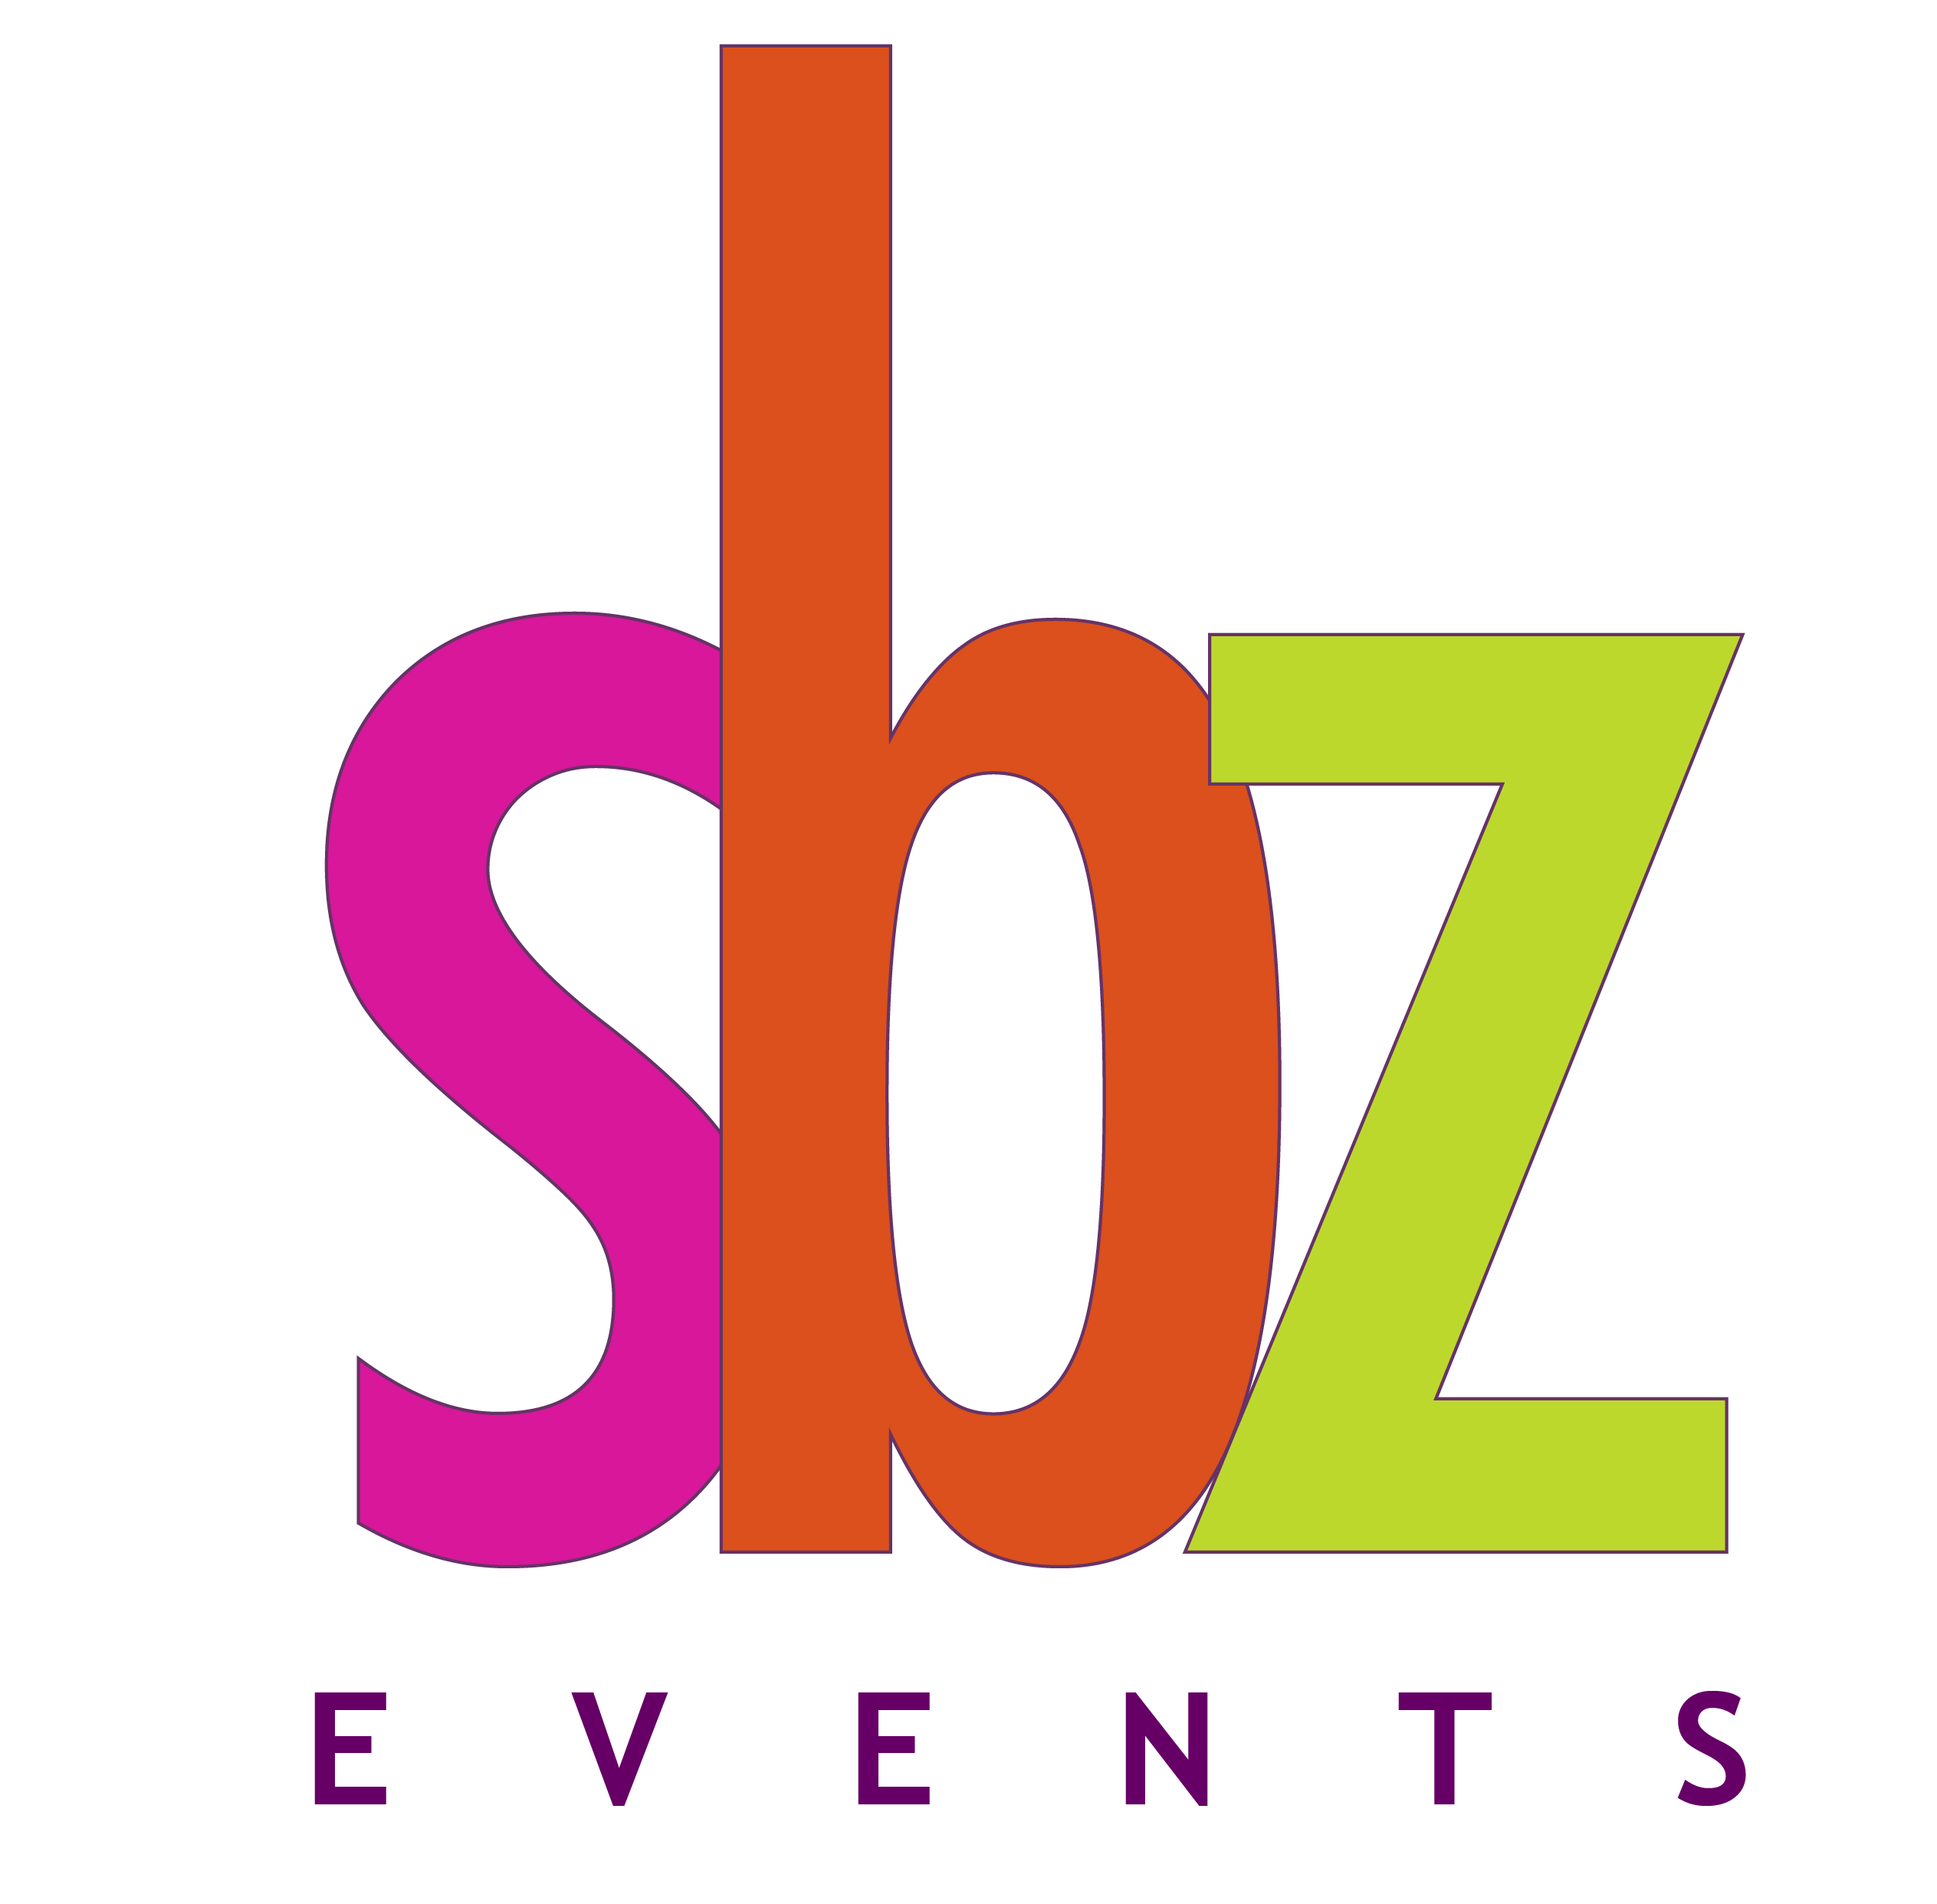 SBZ Events – NYC's Premier Event Planning Agency